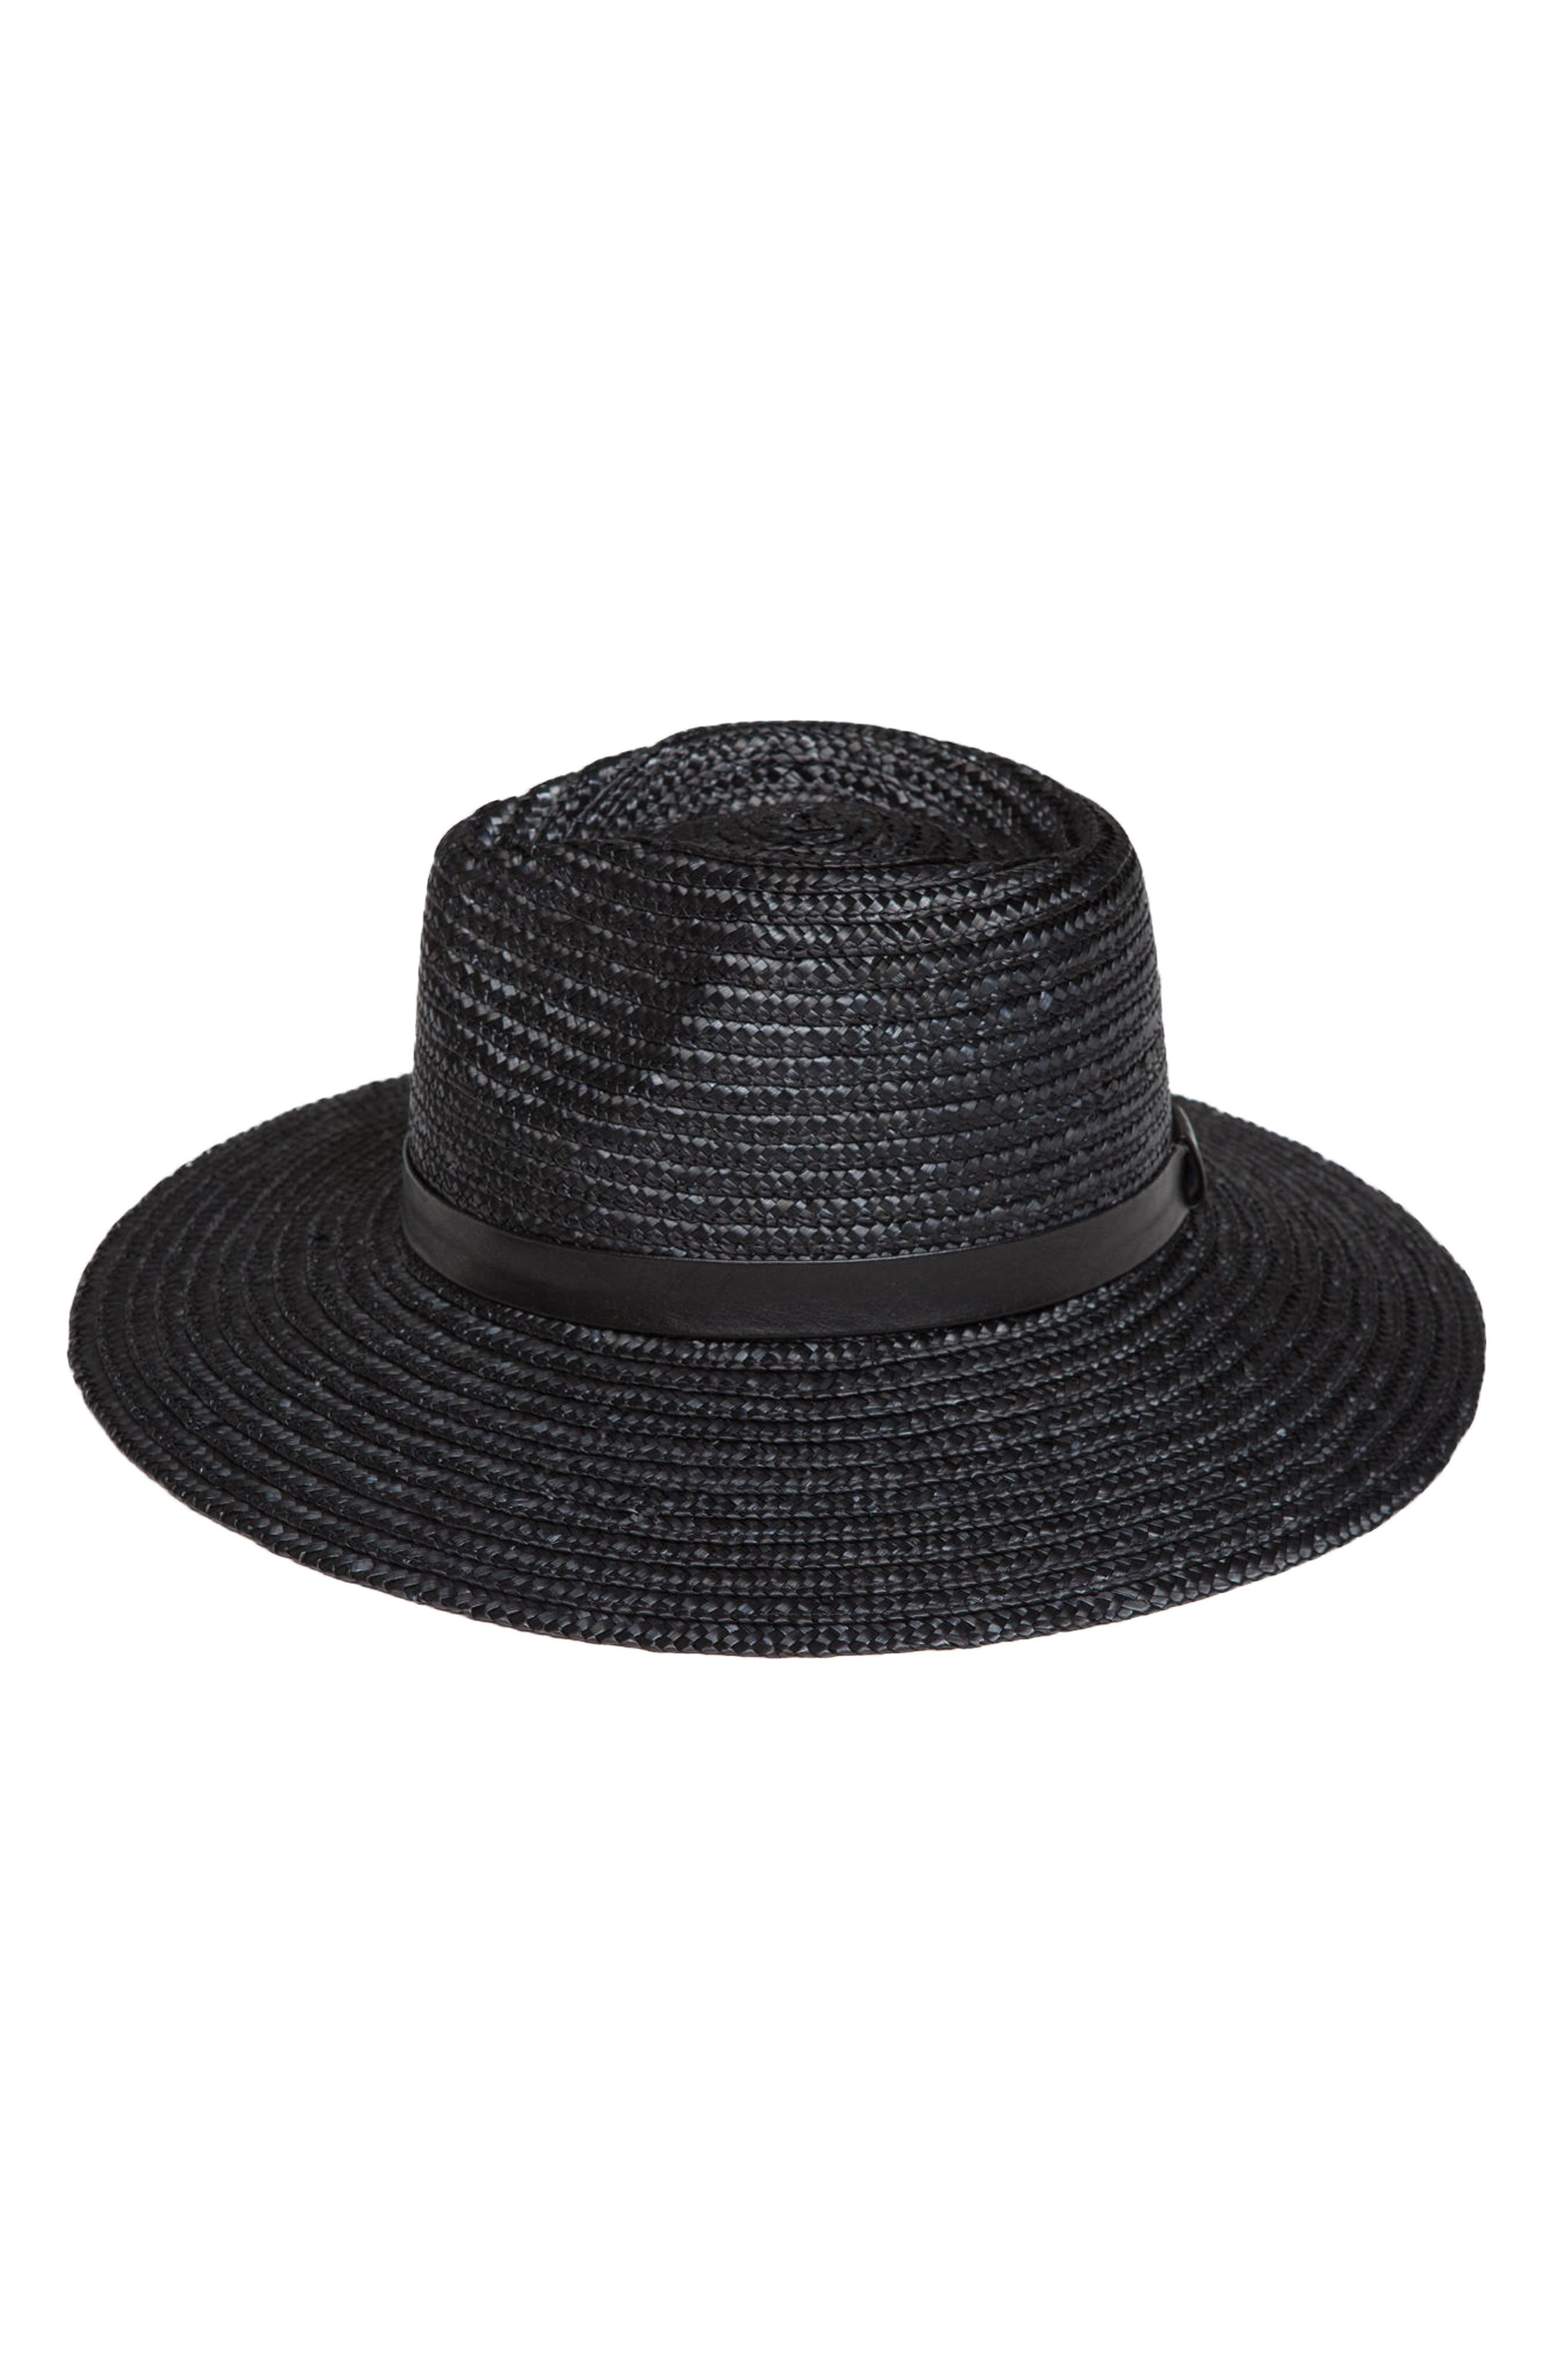 Don't Look Back Straw Hat,                         Main,                         color, Black